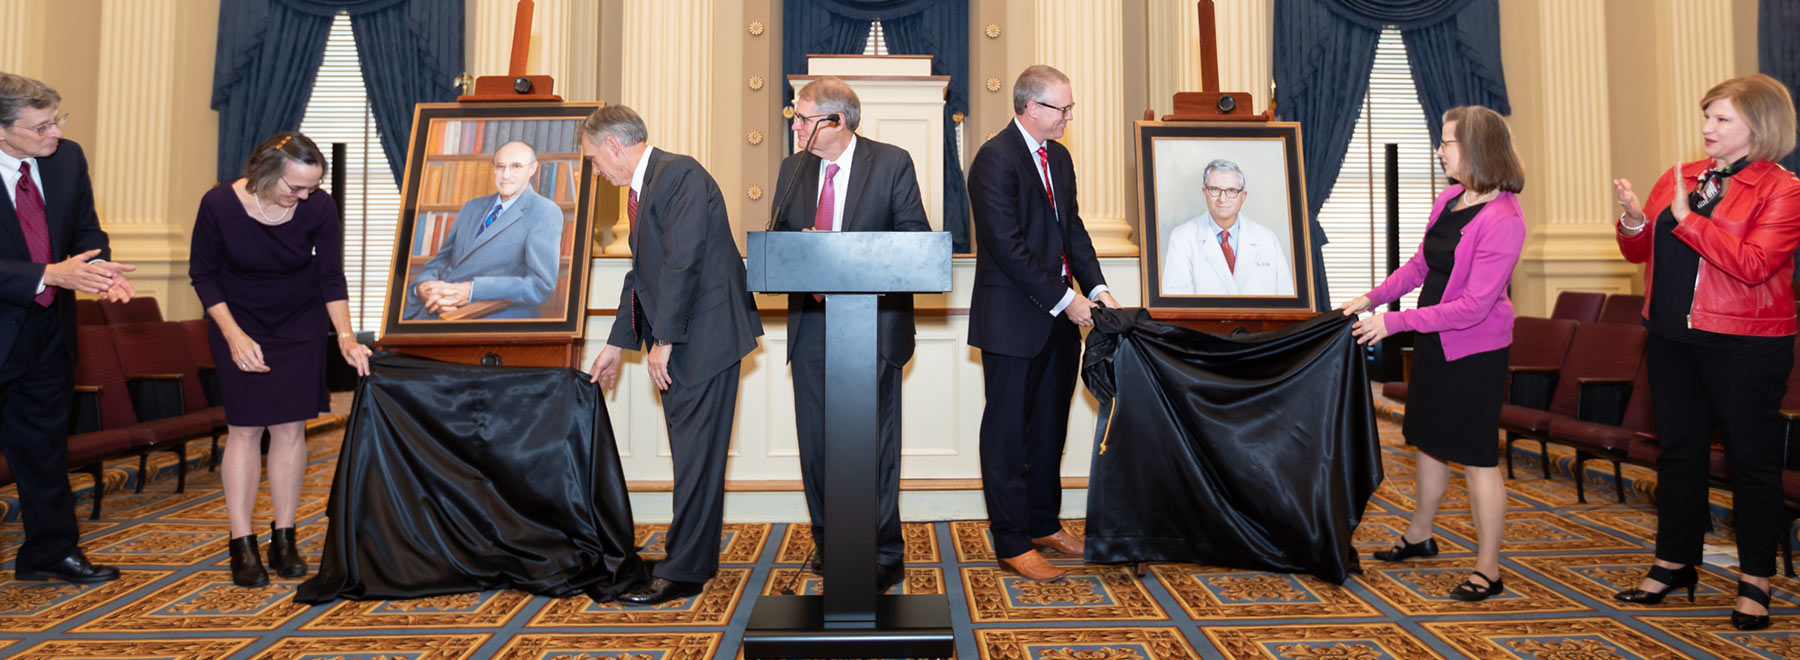 Two frames of mind: State Hall of Fame dedicates Guyton, Hardy portraits